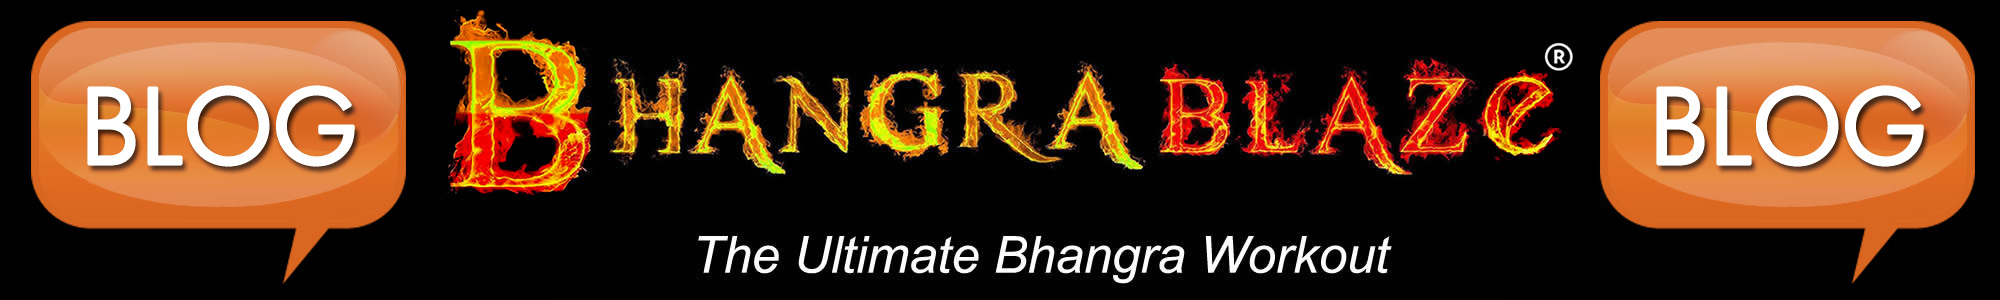 BhangraBlaze Blog